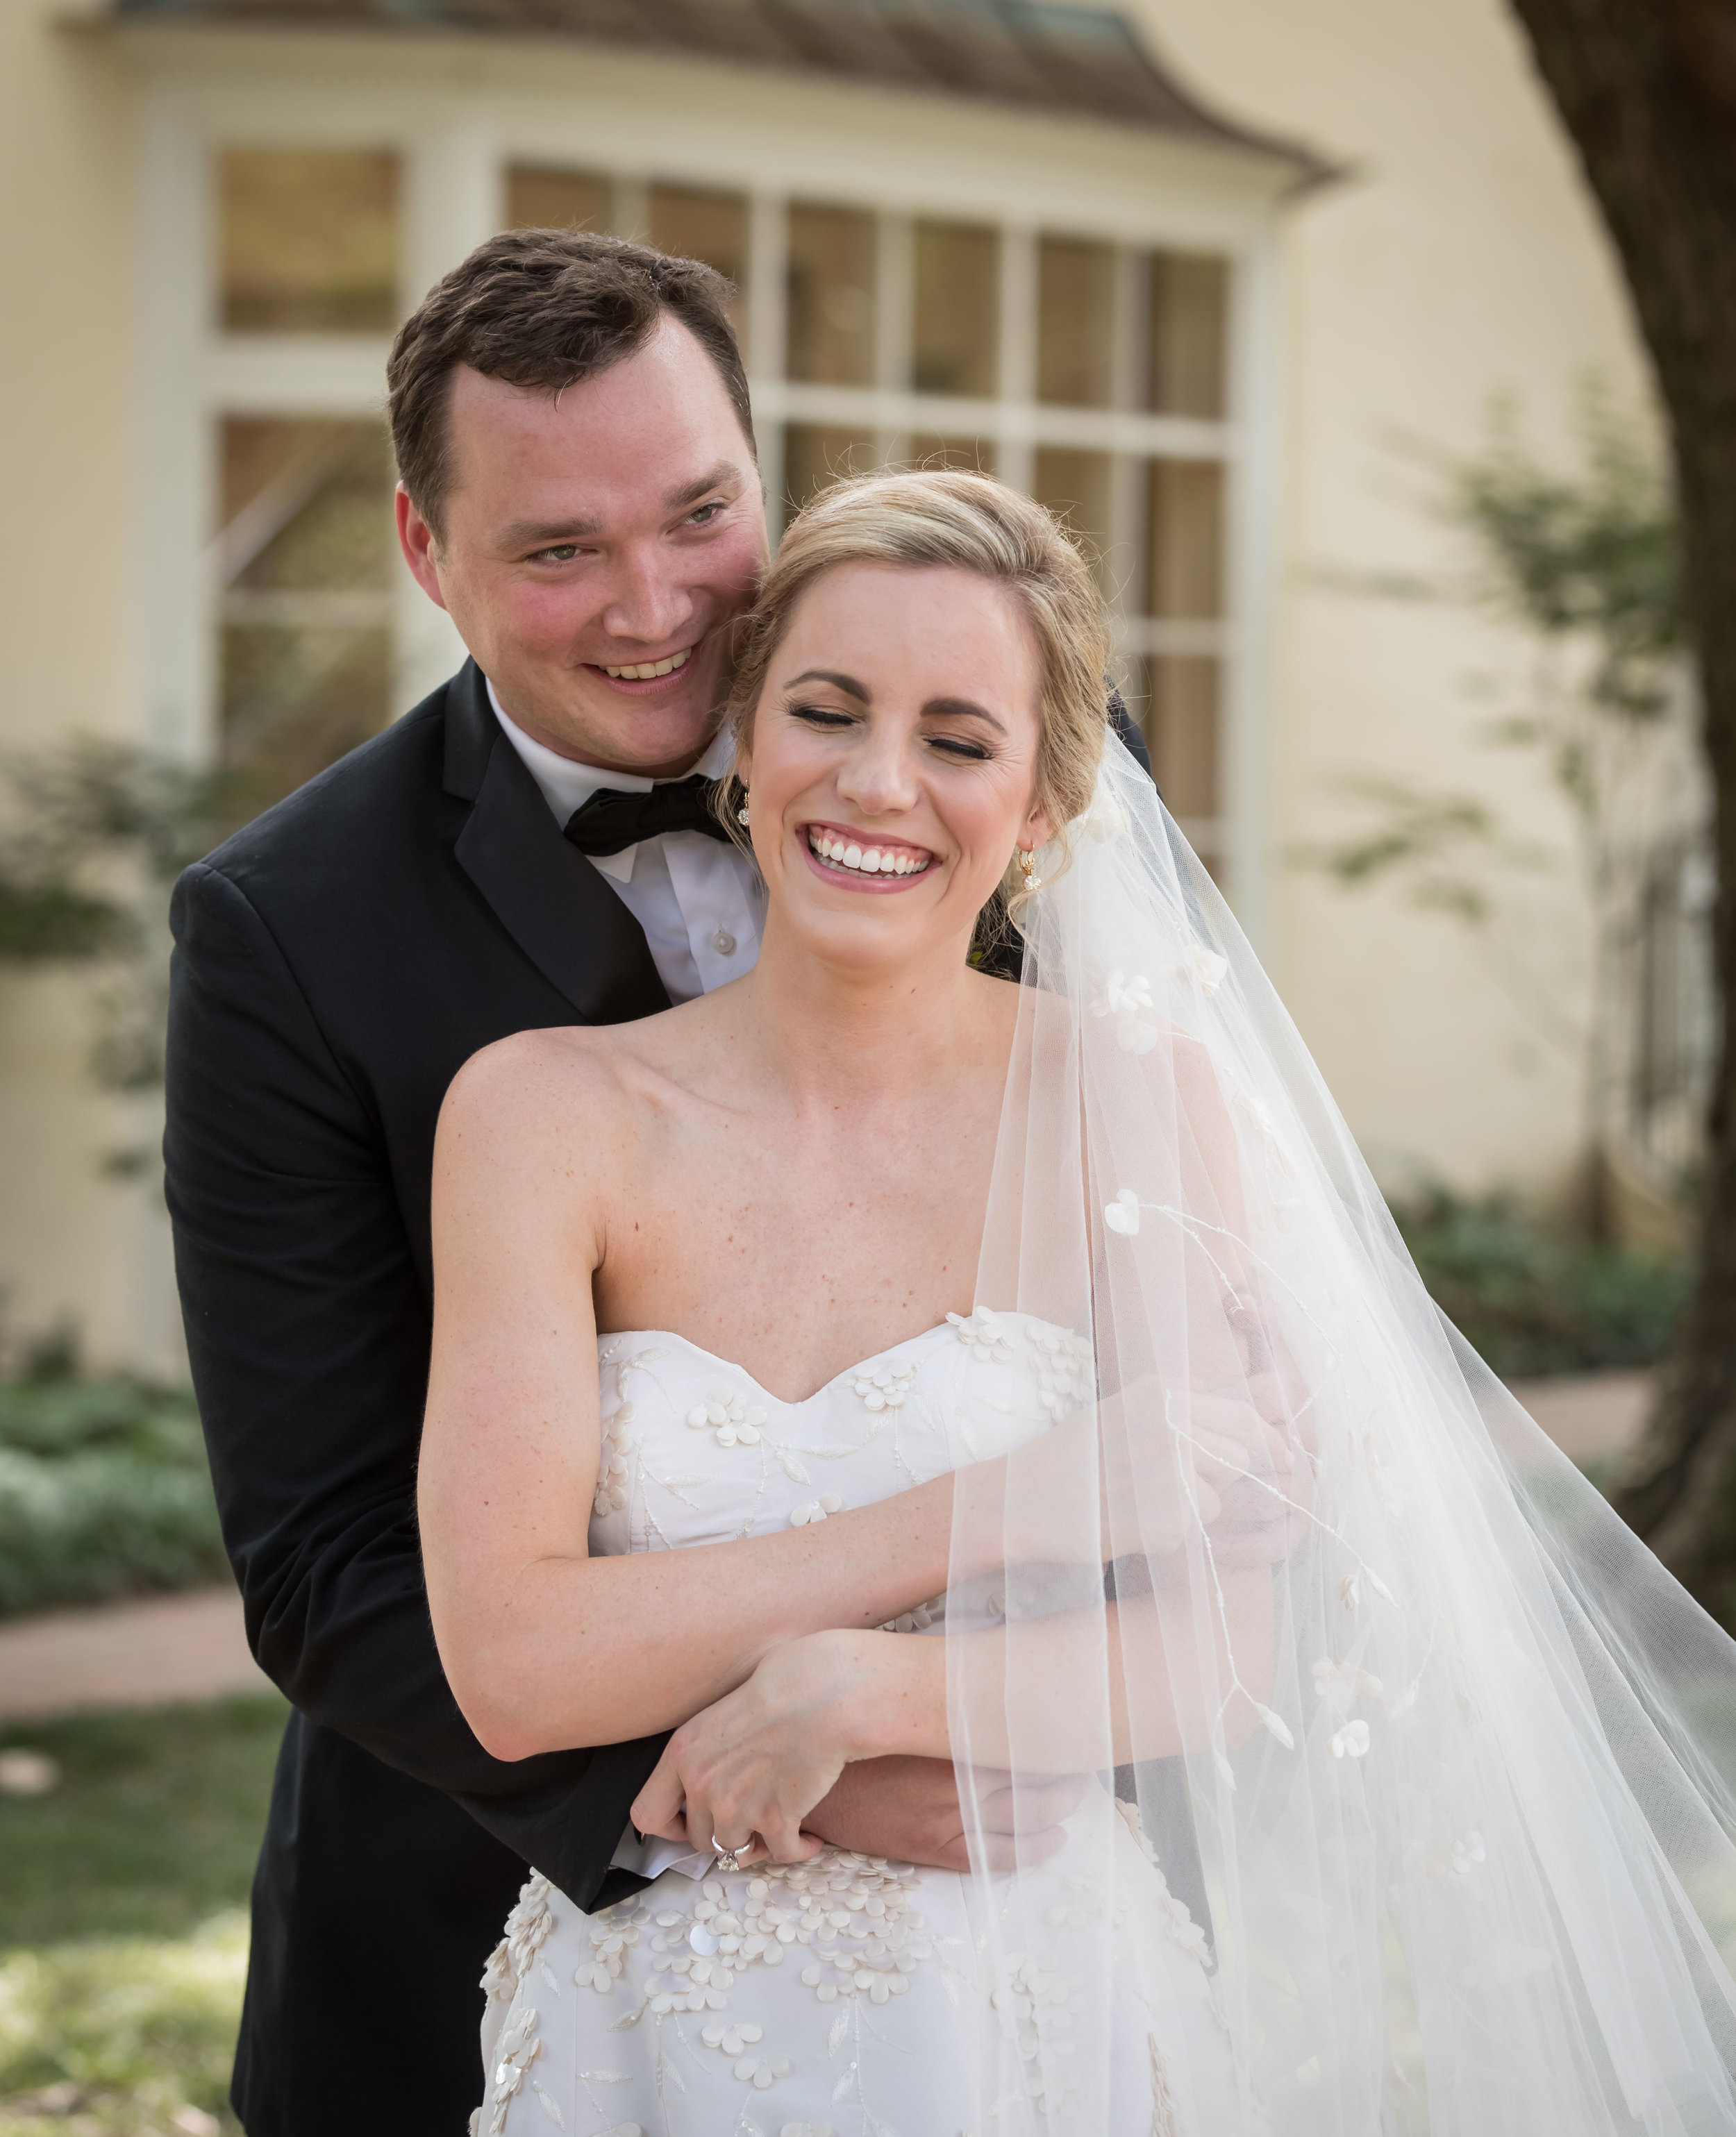 Southern Fete, Southern Wedding, Bride and Groom Moment, Jay Faugot Photography, The Beauty Room, Beauty by Victoria